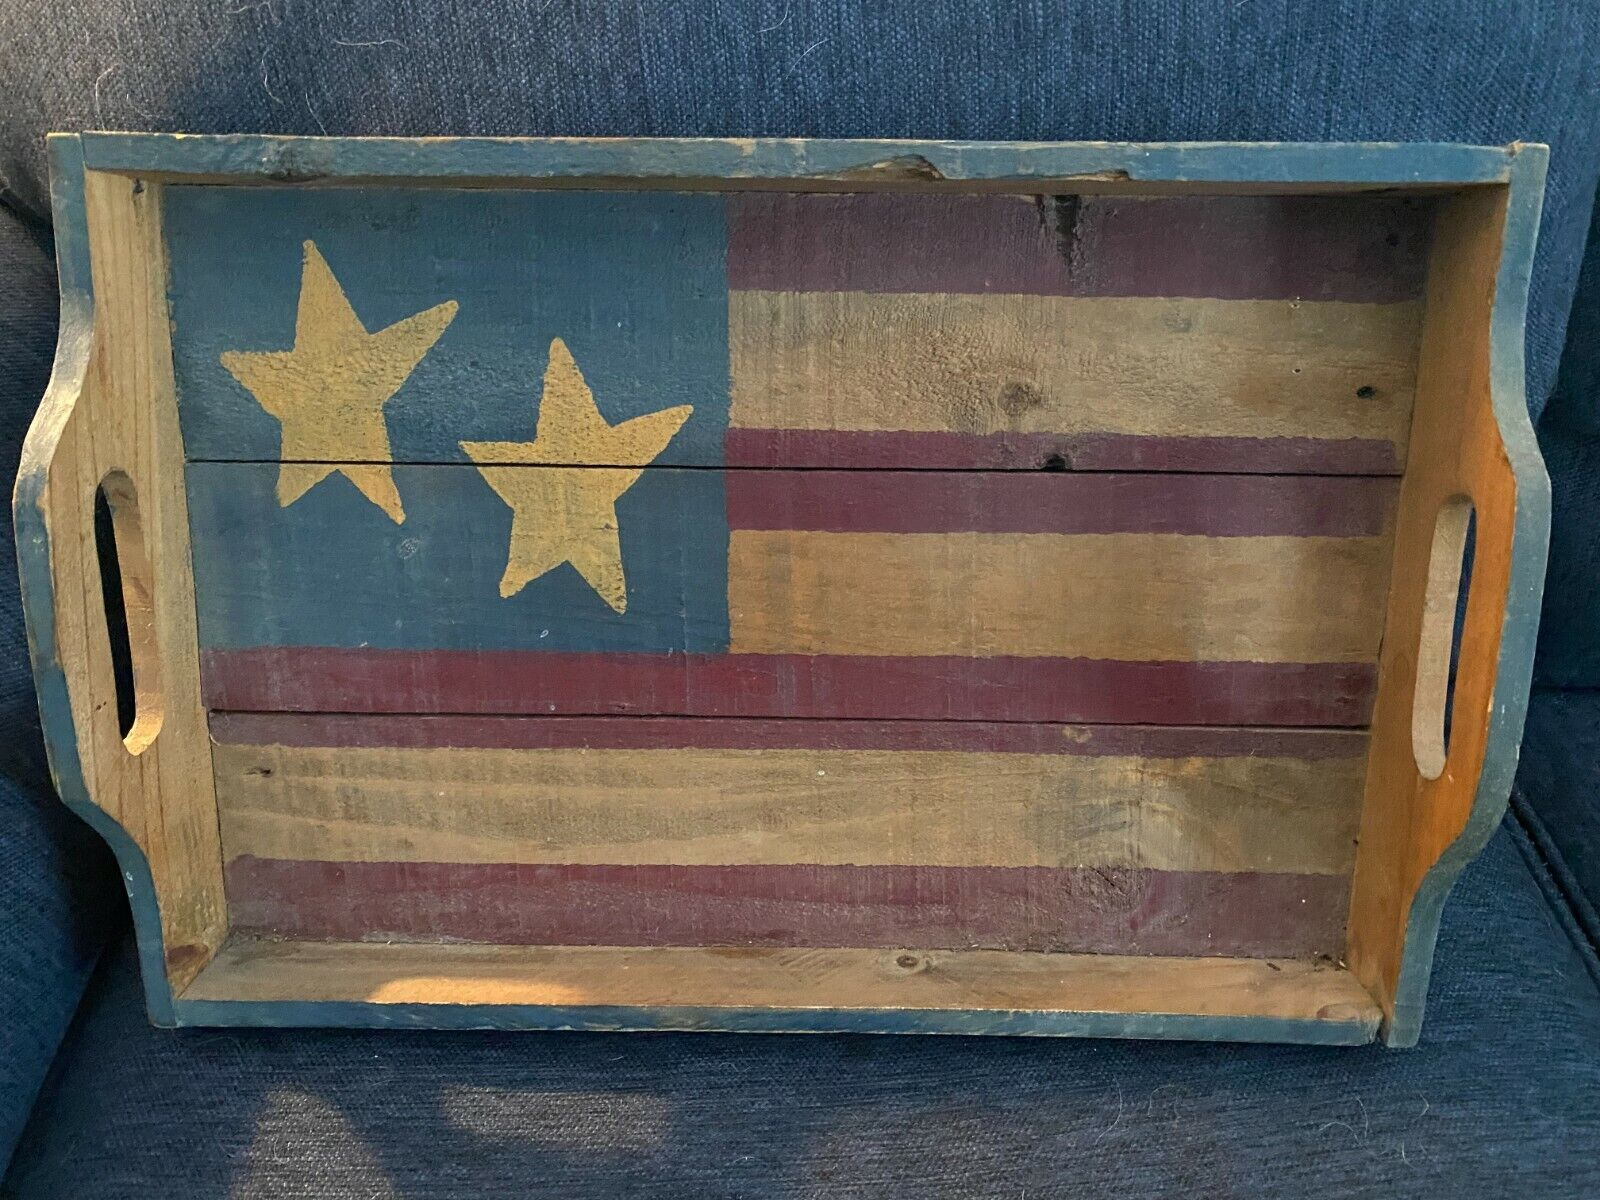 American Flag Wood Tray Distressed Finish - $10.00